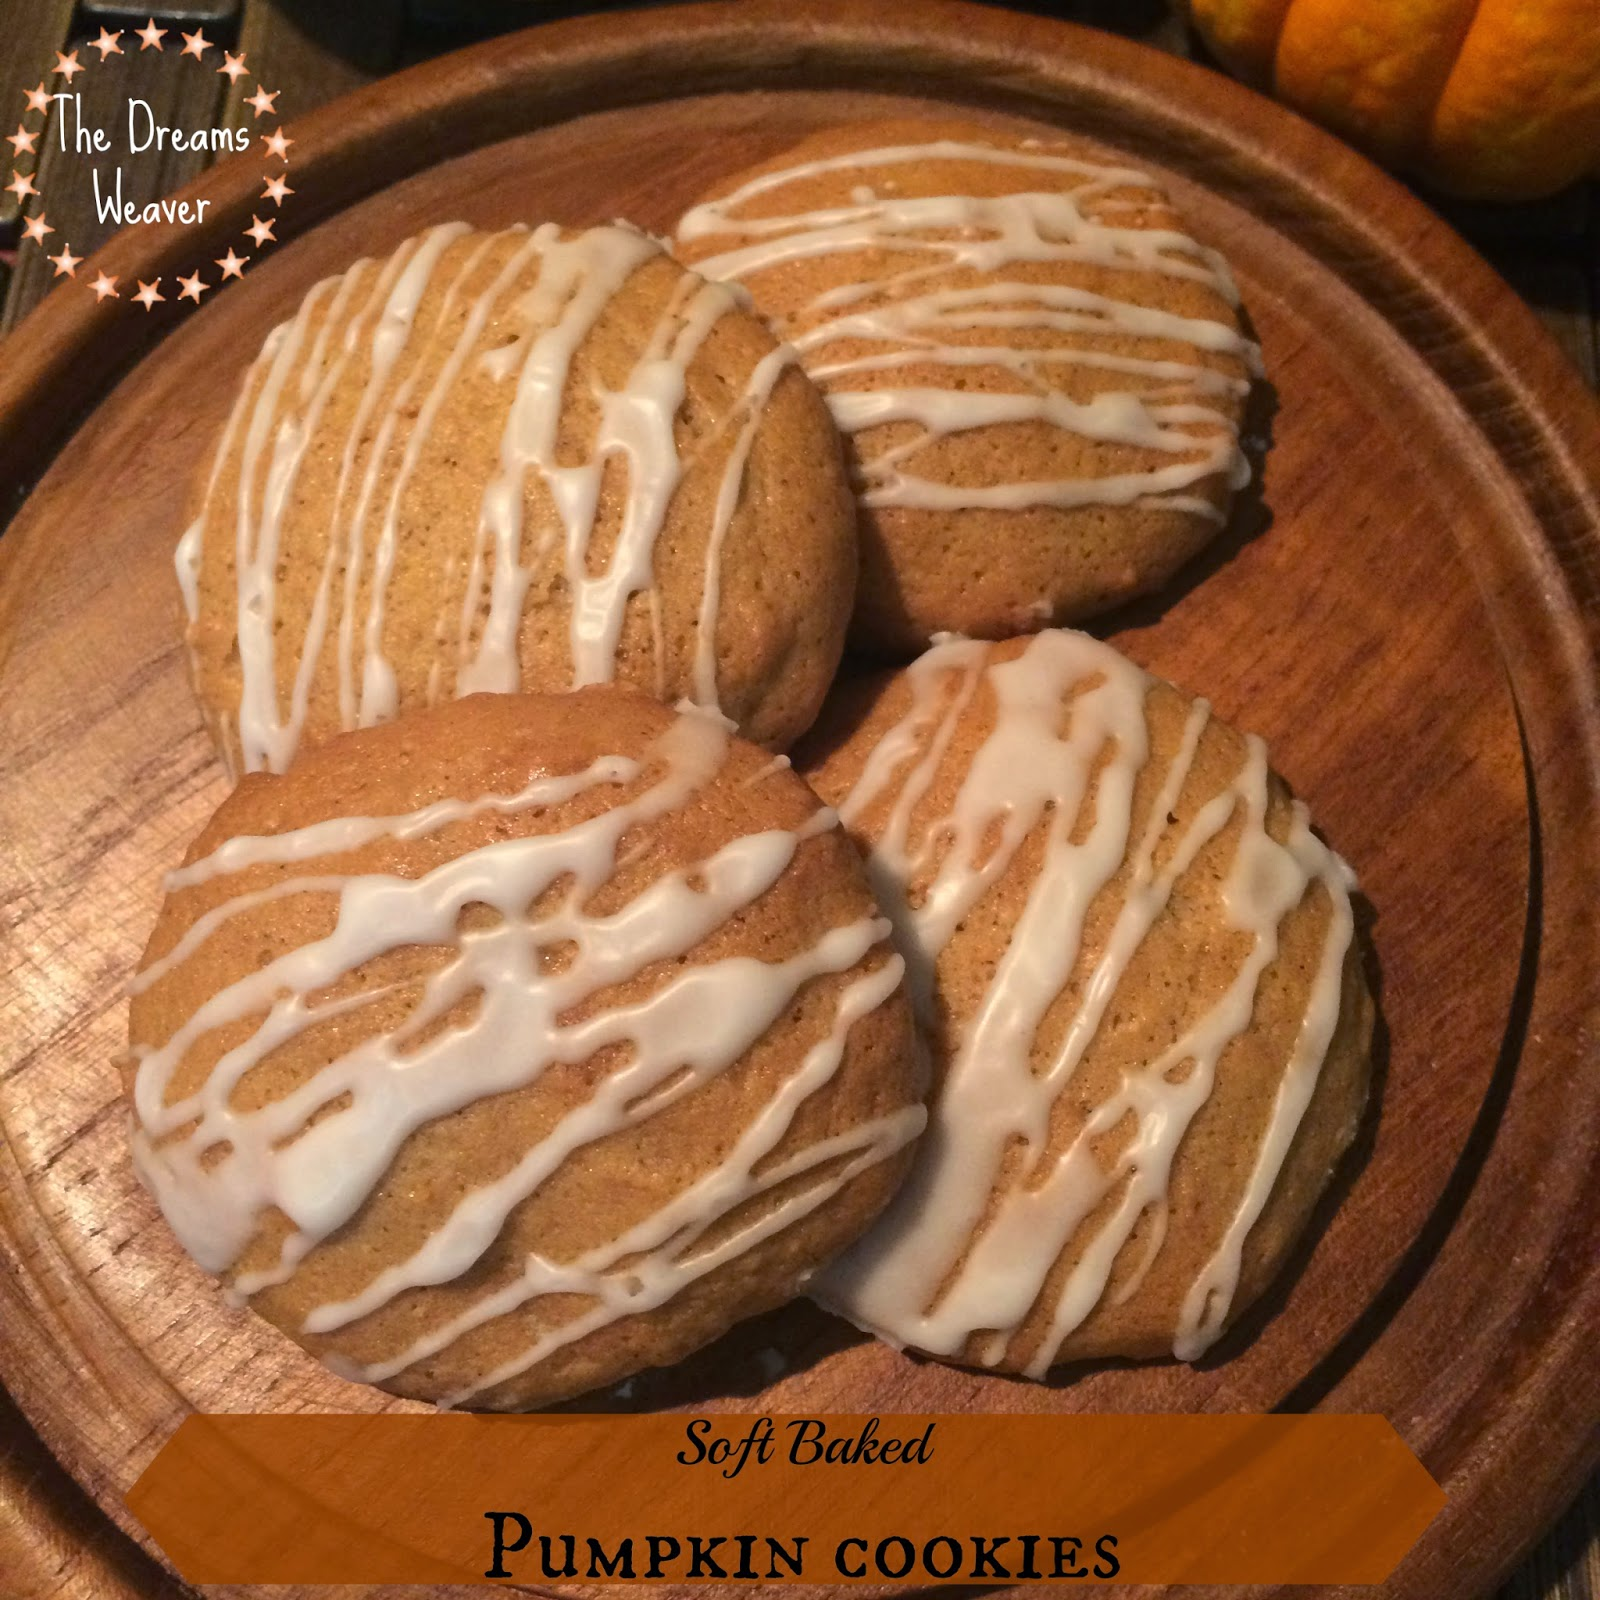 Soft Baked Pumpkin Cookies